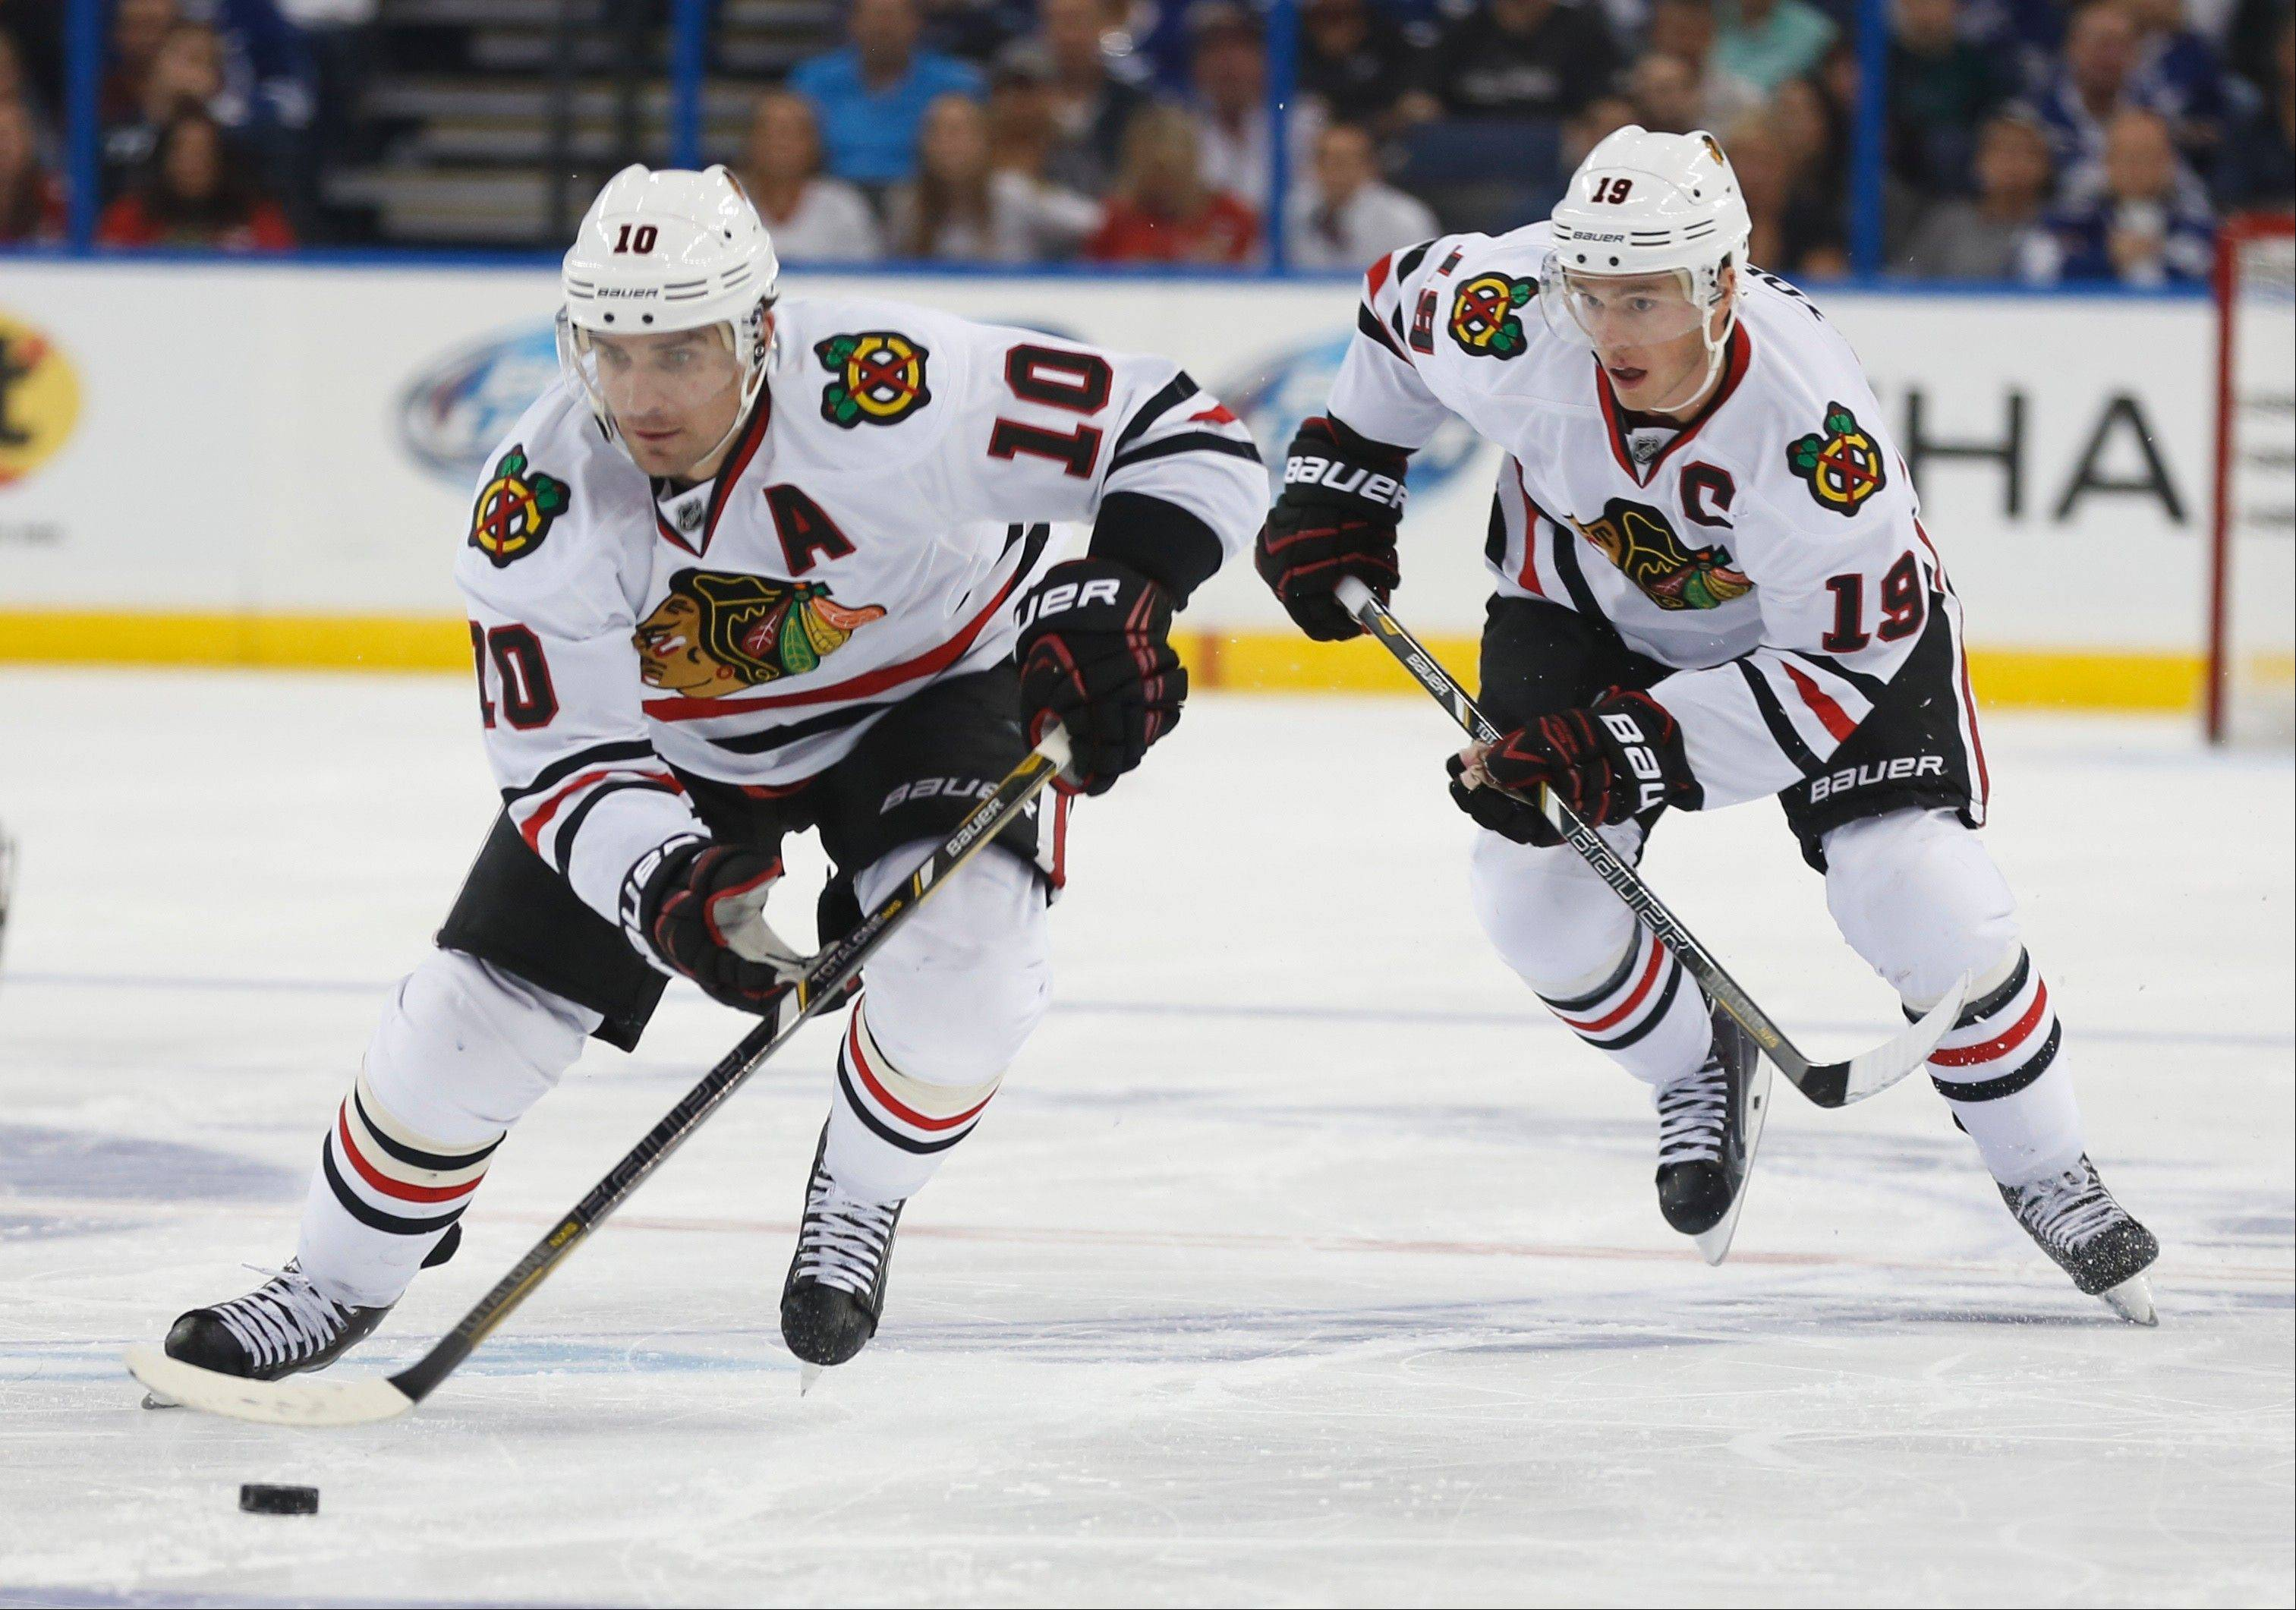 Teammates Patrick Sharp (10) and Jonathan Toews will play for Team Canada in next month's Olympic Games in Sochi along with Blackhawks defenseman Duncan Keith. While Brent Seabrook and Corey Crawford didn't make the Canada's roster, a total of 10 Blackhawks will be heading to Sochi for Olympic duty.